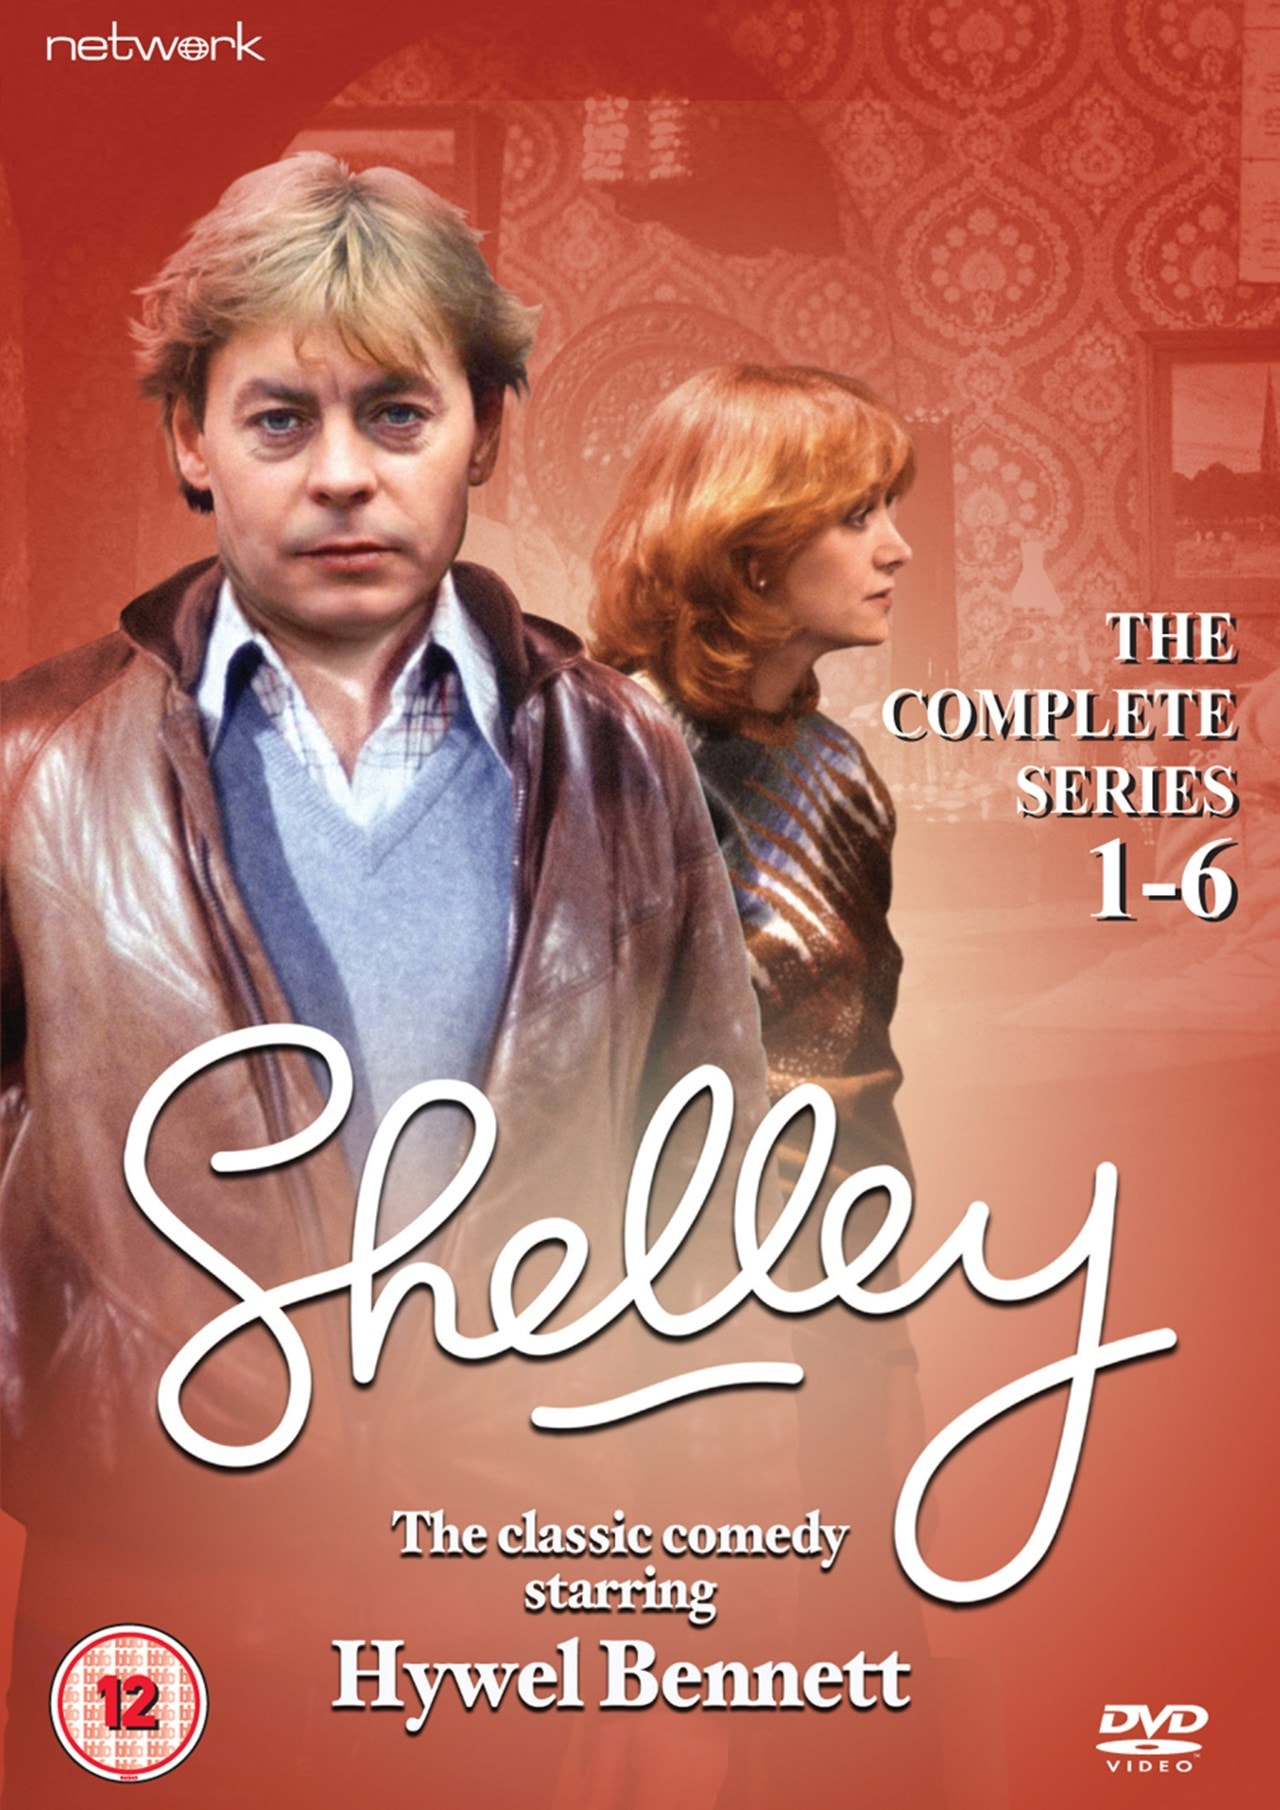 Shelley: The Complete Series 1-6 - 1